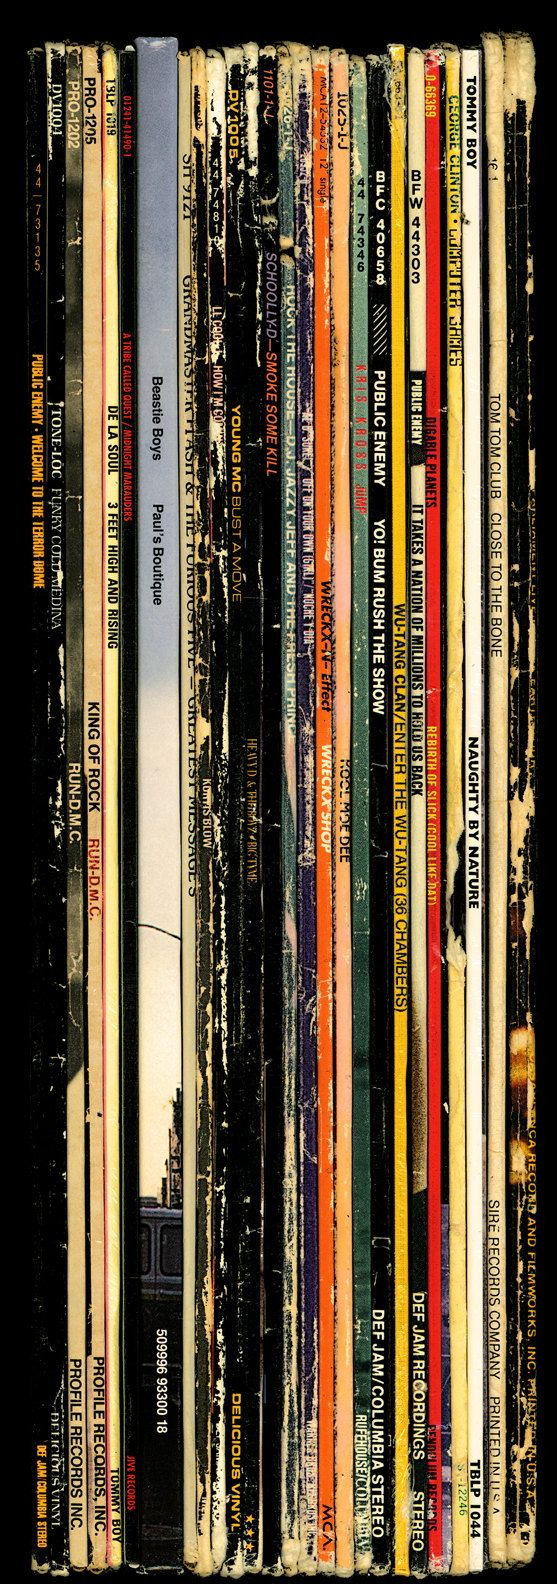 Hip Hop Spines by Bughouse.